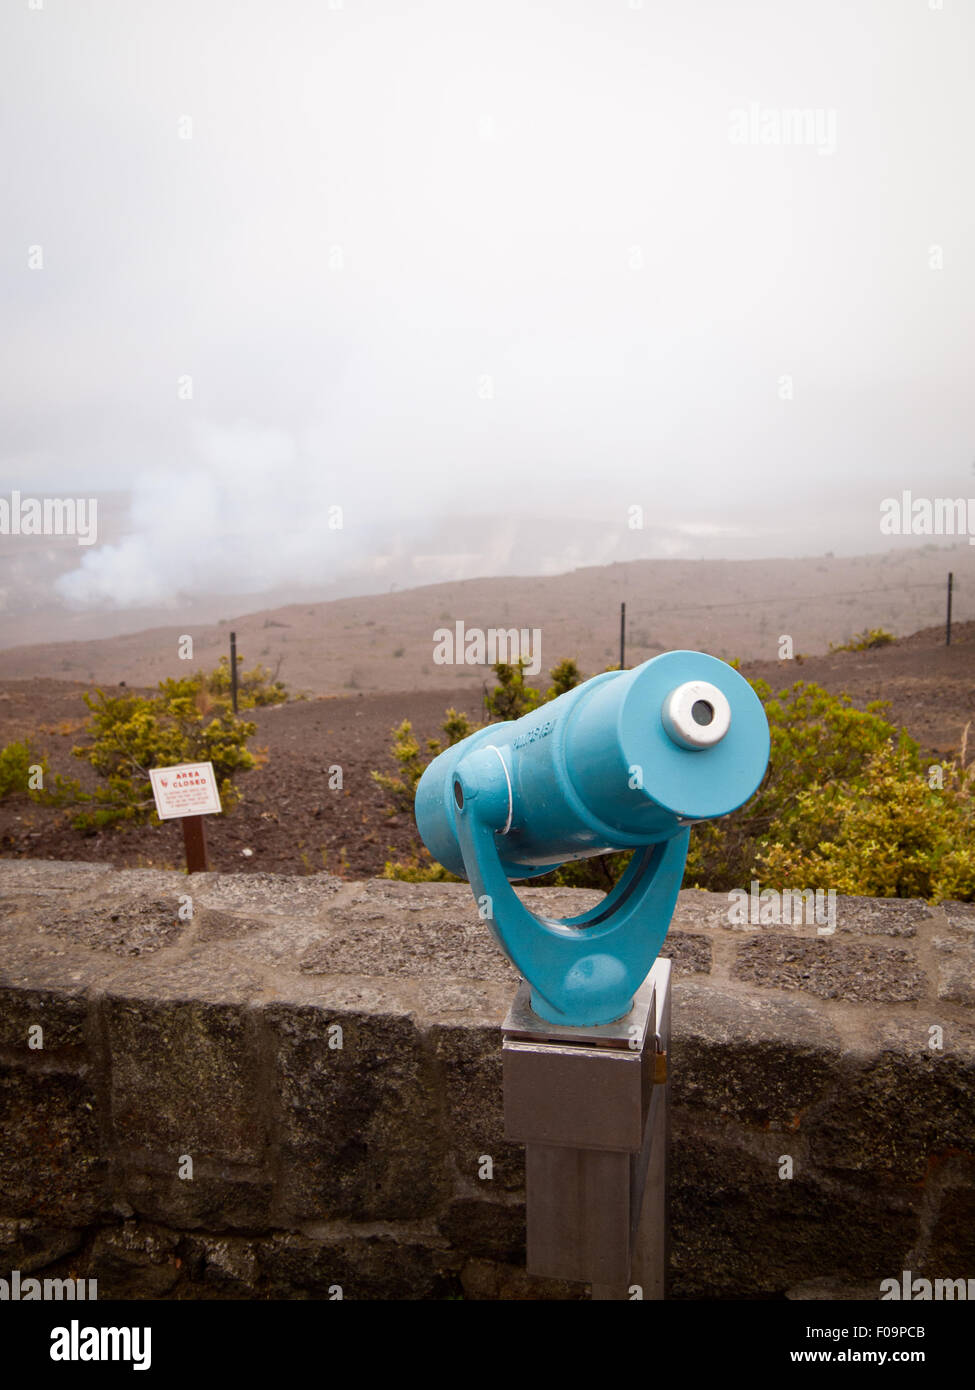 A turquoise blue viewfinder aimed at the centre of the Halema'uma'u Crater and Kilauea Caldera, Hawai'i - Stock Image